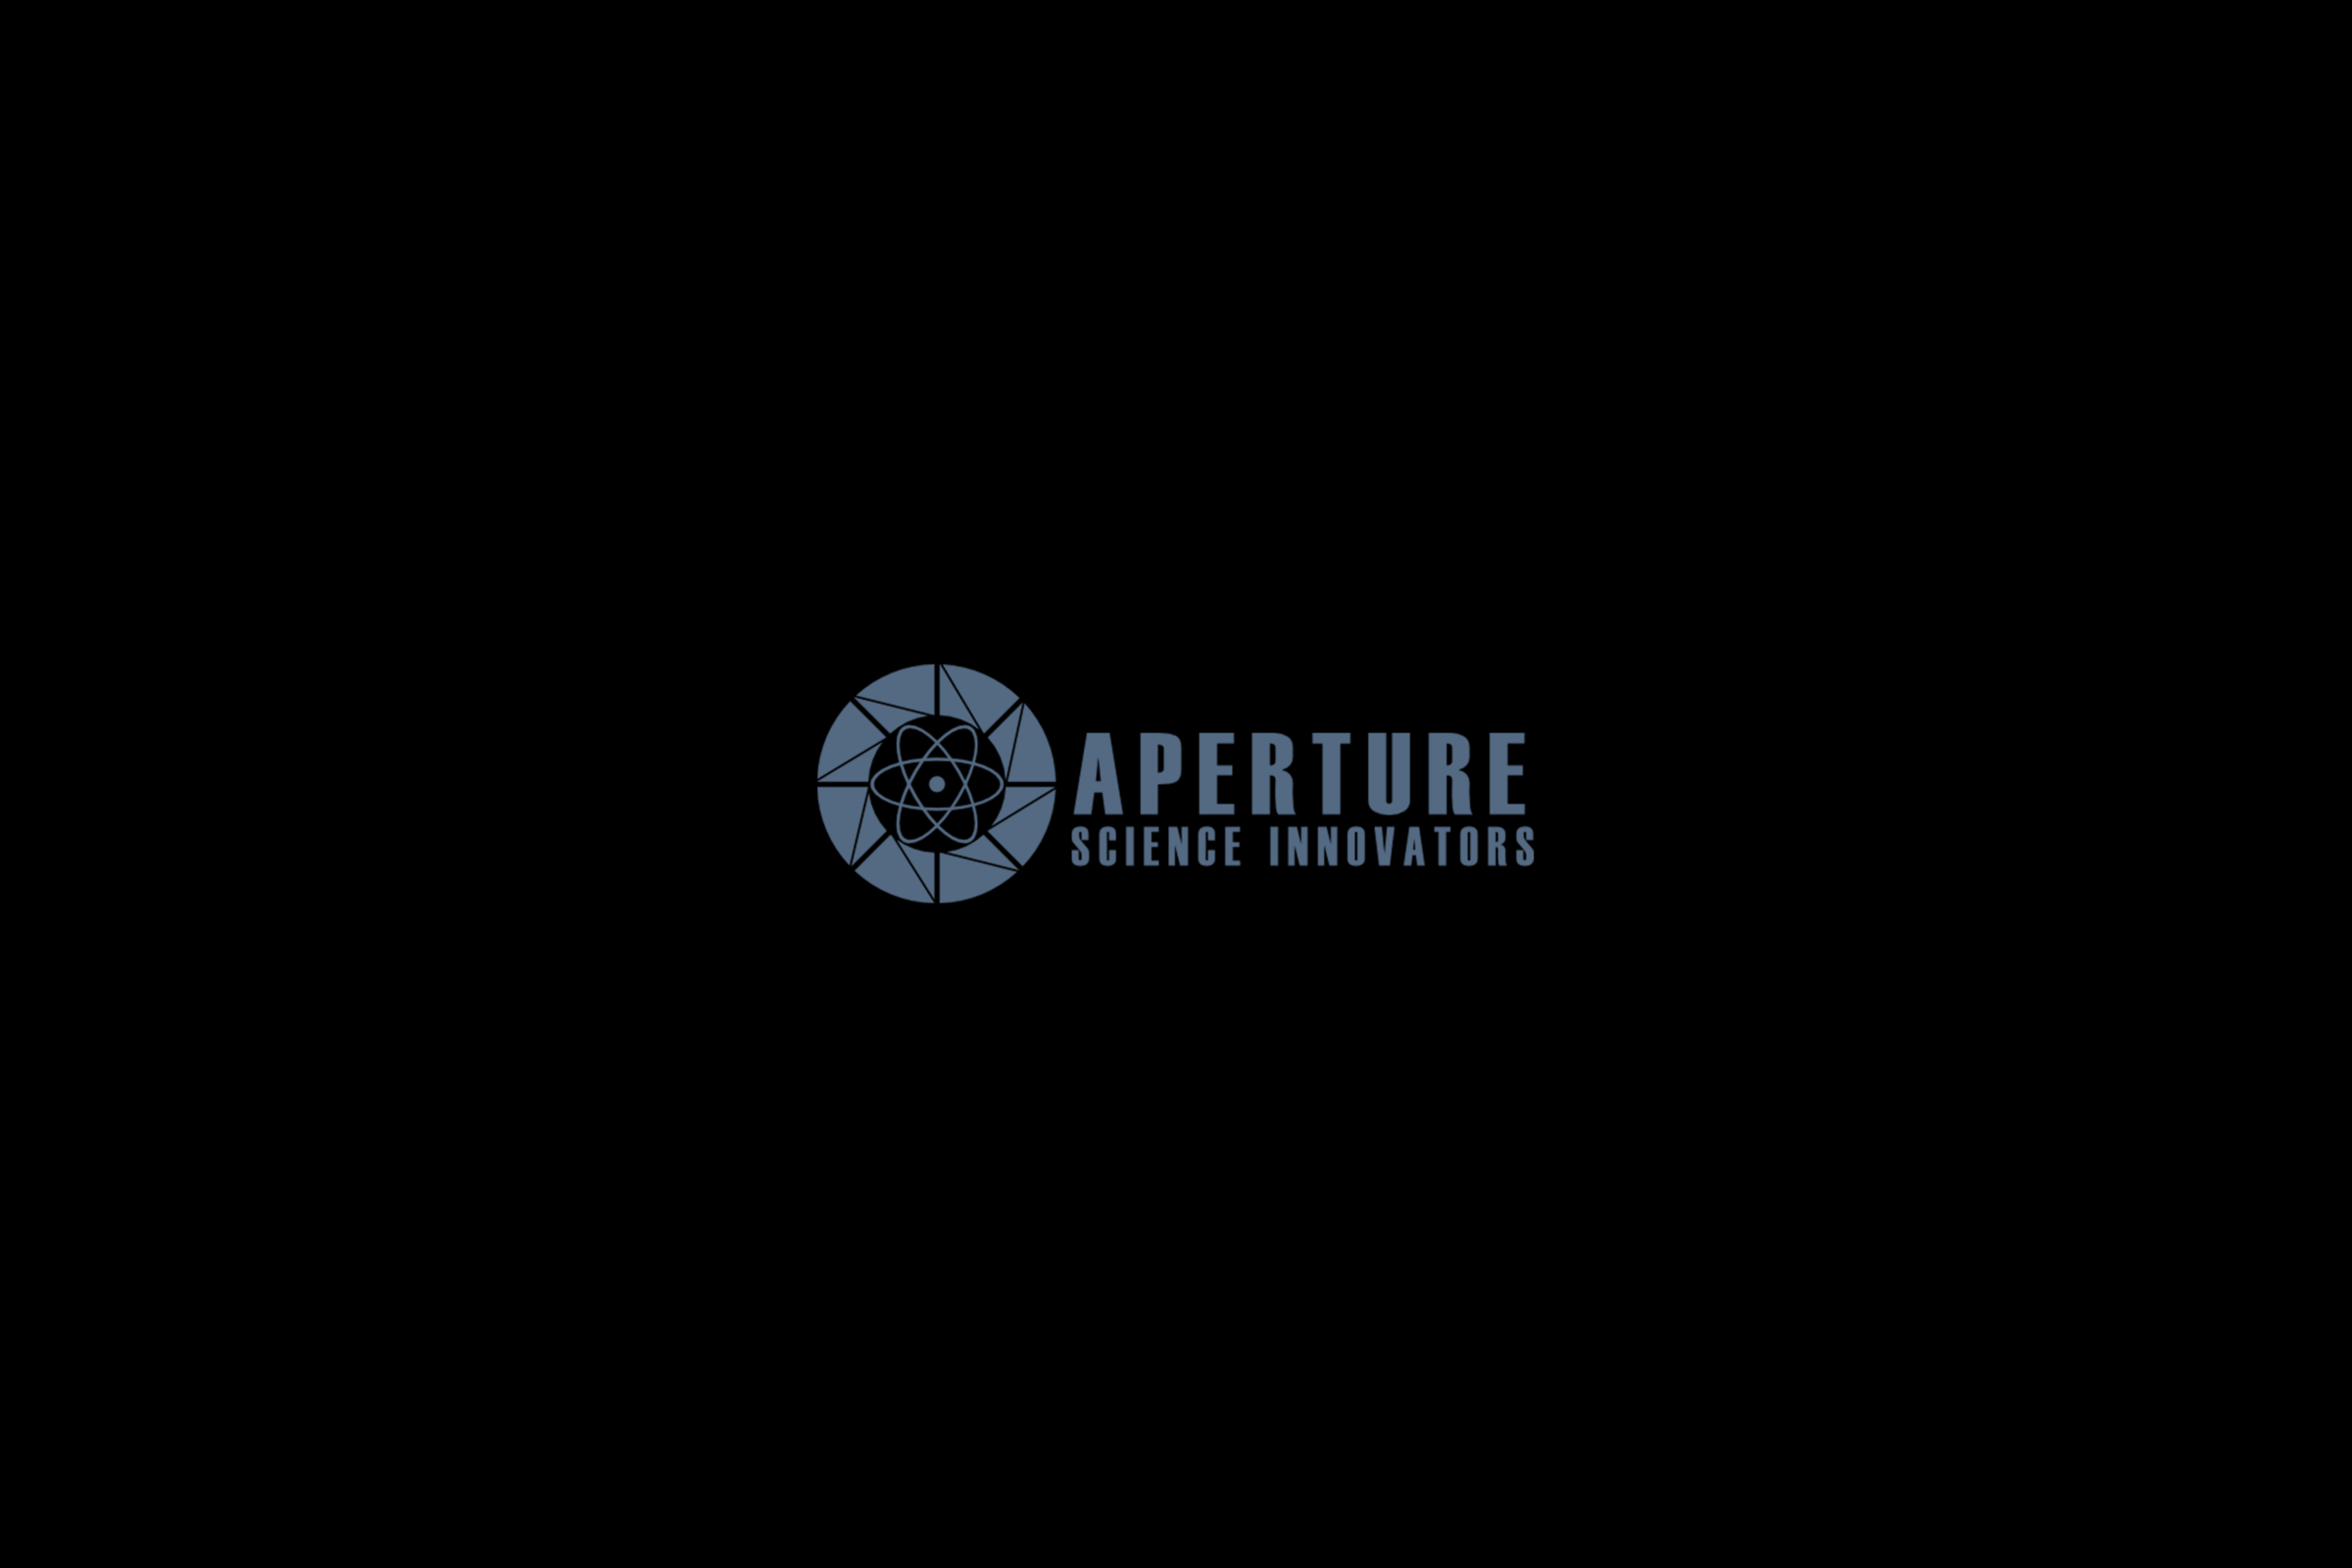 Aperture Science High Definition Wallpapers